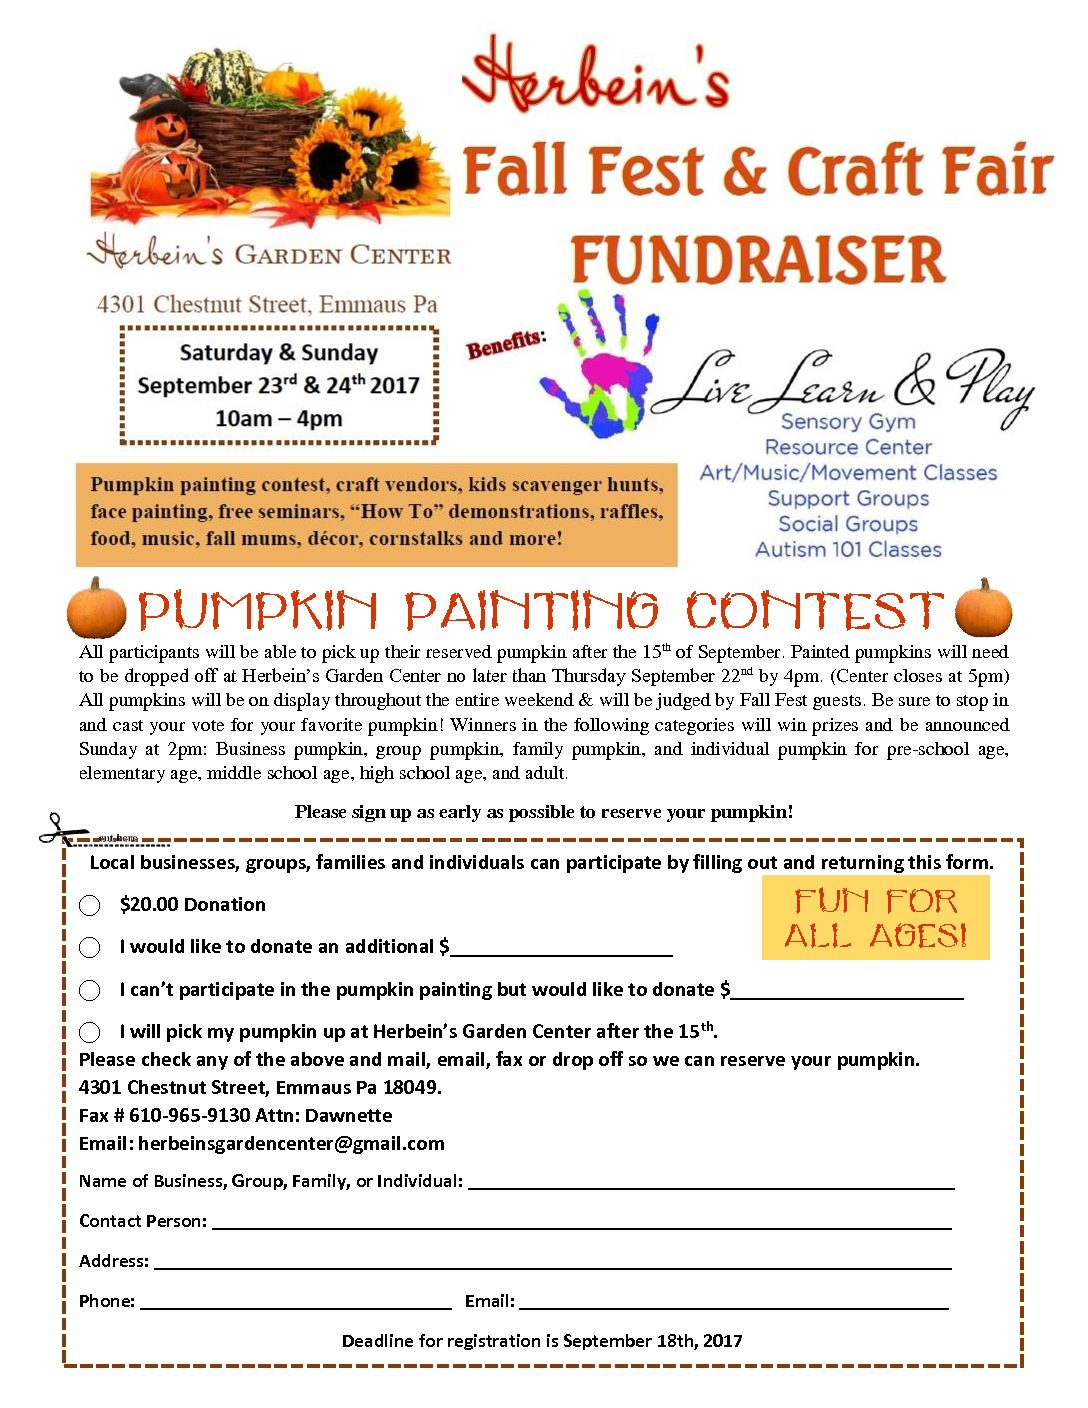 Contest Form | Fall Fest Craft Fair Fundraiser Pumpkin Painting Contest Form